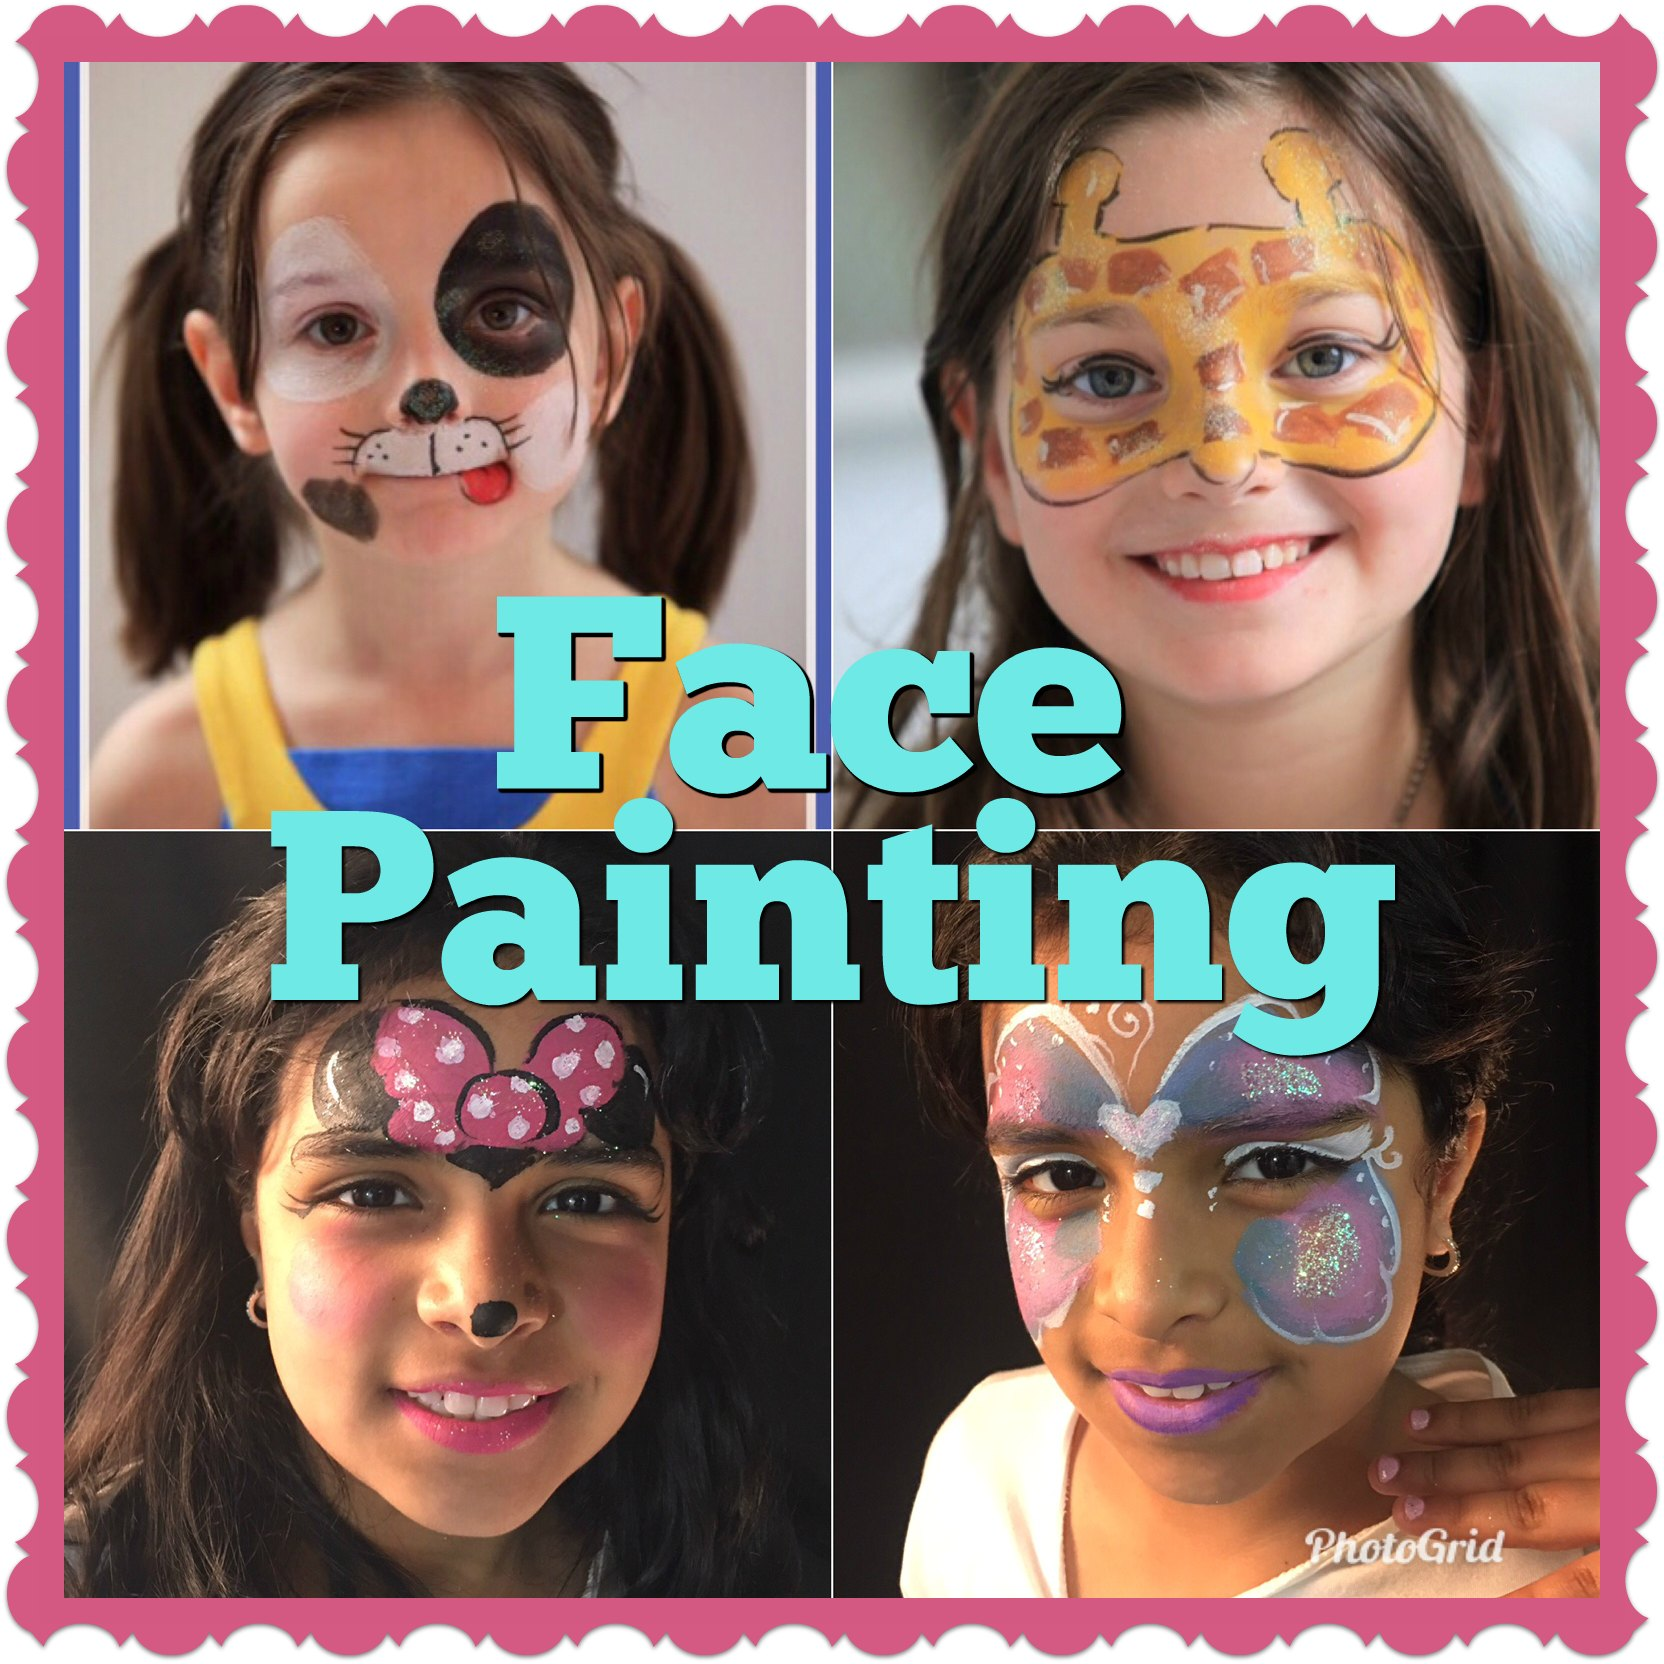 Best Face Painting NYC Kids Adults Birthday Party NYC Manhattan UES Midtown UWS Chelsea Tribeca Greenwich Village Soho East Village Union Square DUMBO Williamsburg Brooklyn Heights Westchester Riverdale Corporate Event